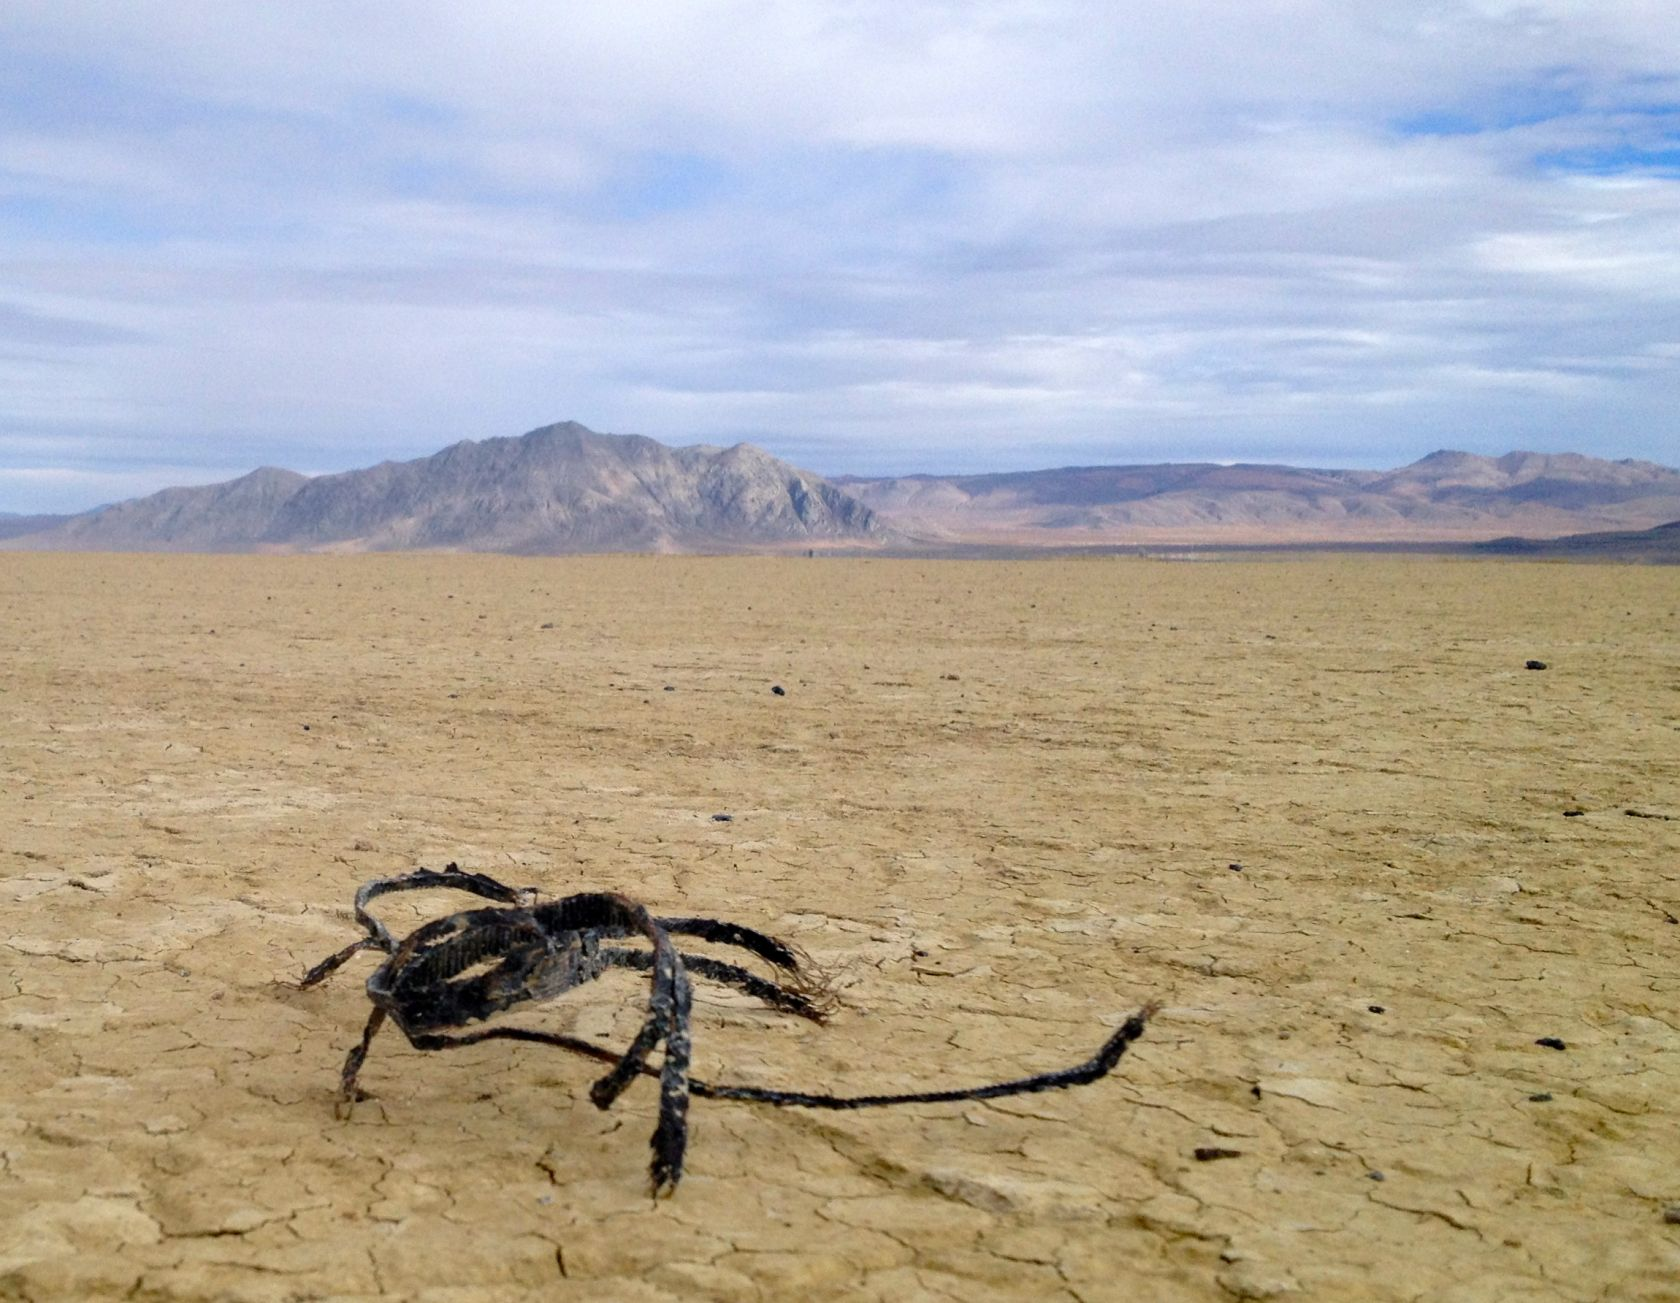 Here we uh, encounter the uh, rarely seen and even less frequently photographed FRAYWIRE ZIPTIE SCORPION of the Black Rock Desert. The DPW have captured a few of these creatures and are trying to train them to eat wood chips. So far the Fraywires are unresponsive but maybe they're frightened or dehydrated.